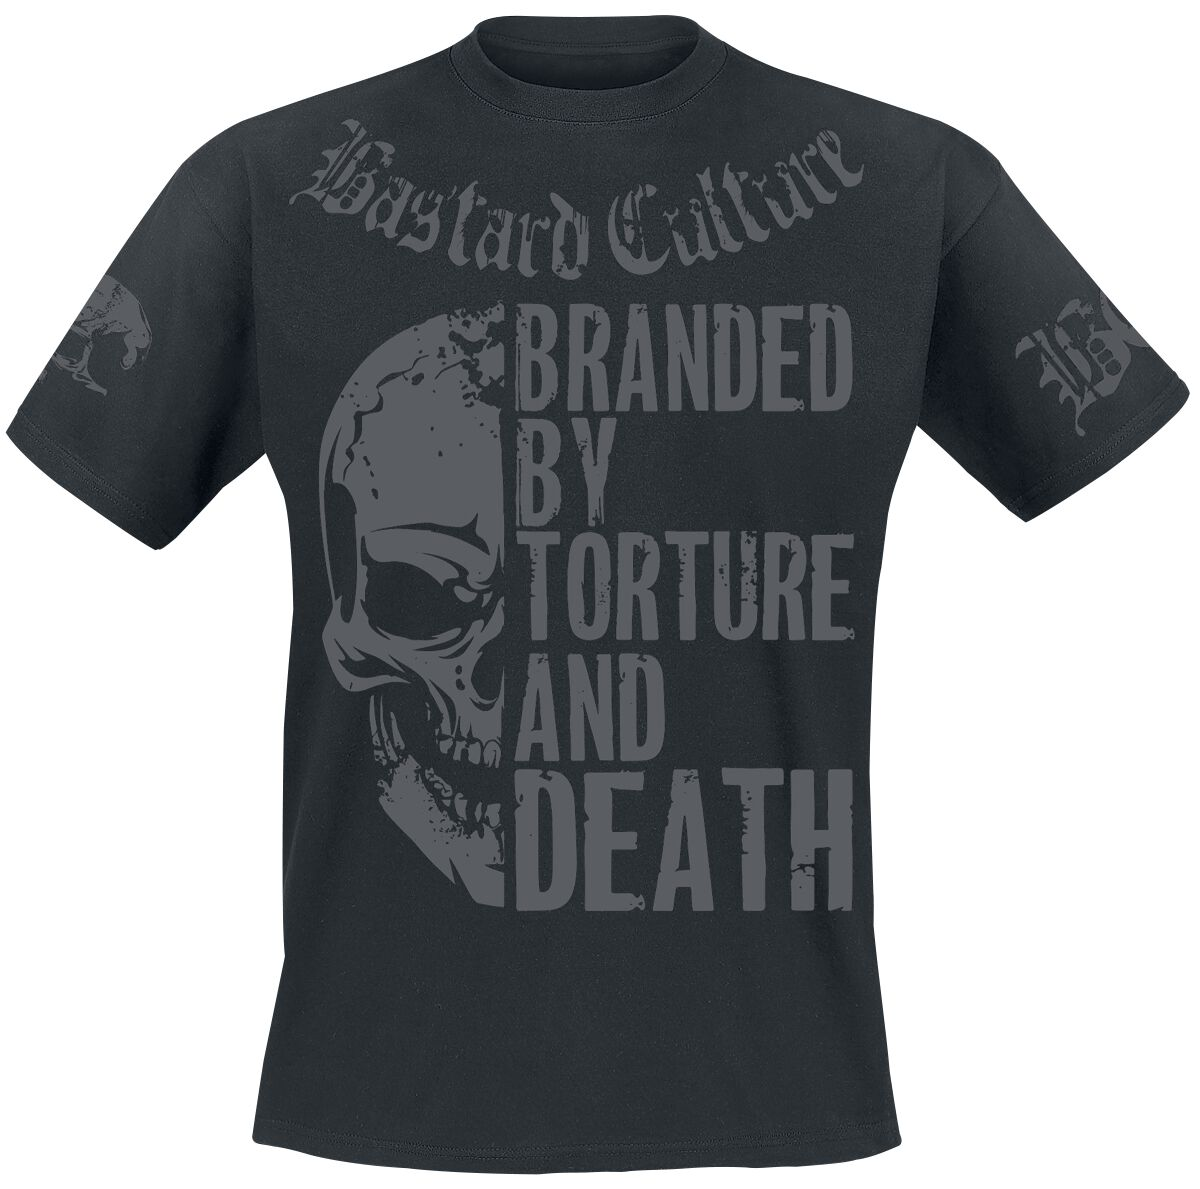 Image of Bastard Culture Branded By Torture And Death T-Shirt schwarz